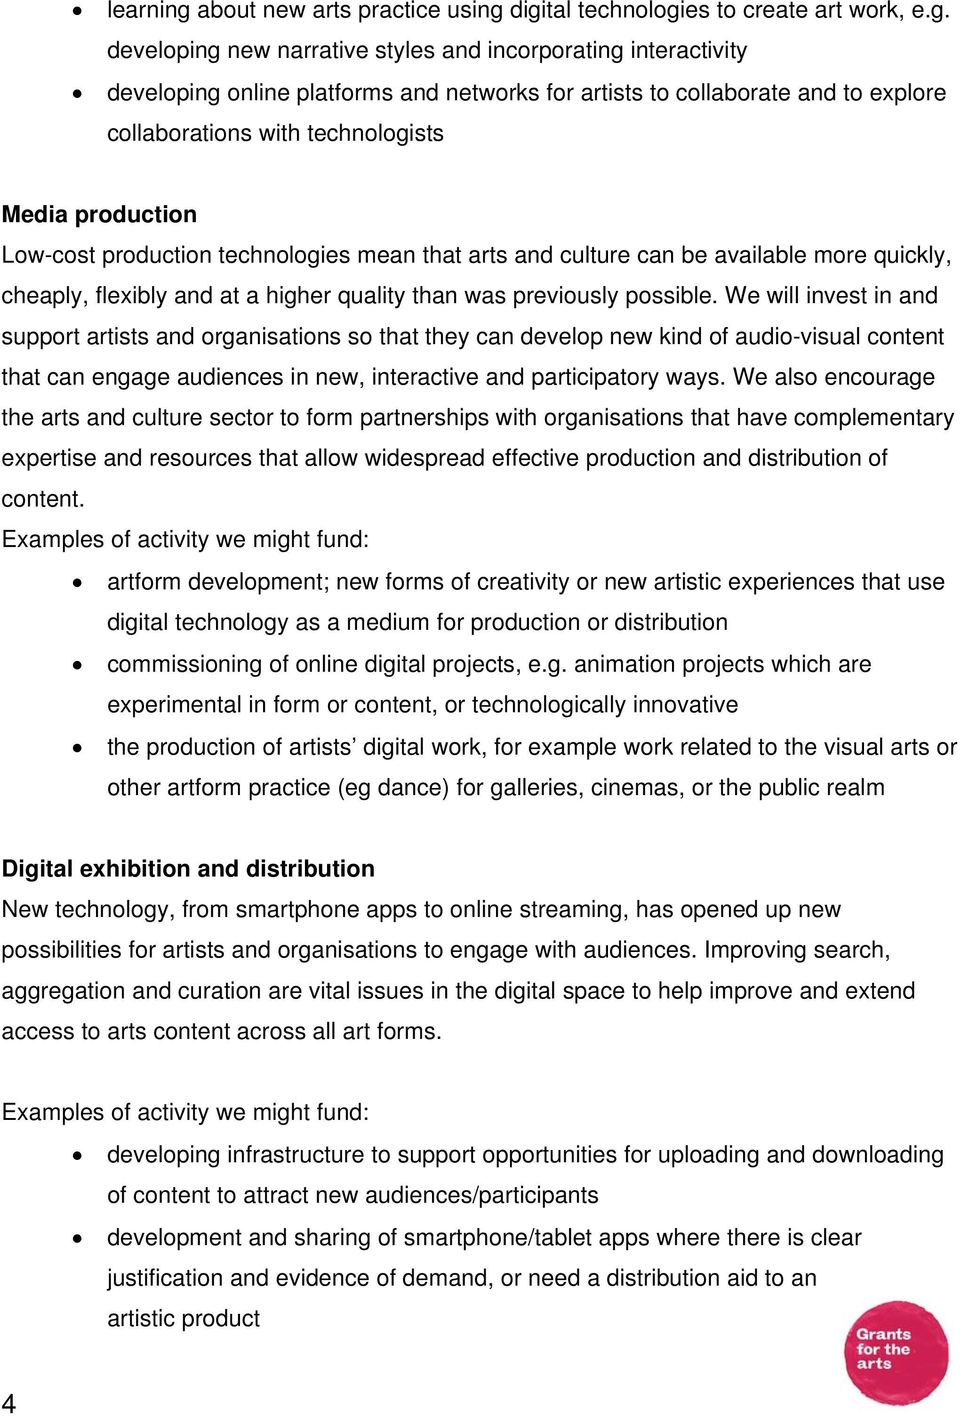 digital technologies to create art work, e.g. developing new narrative styles and incorporating interactivity developing online platforms and networks for artists to collaborate and to explore